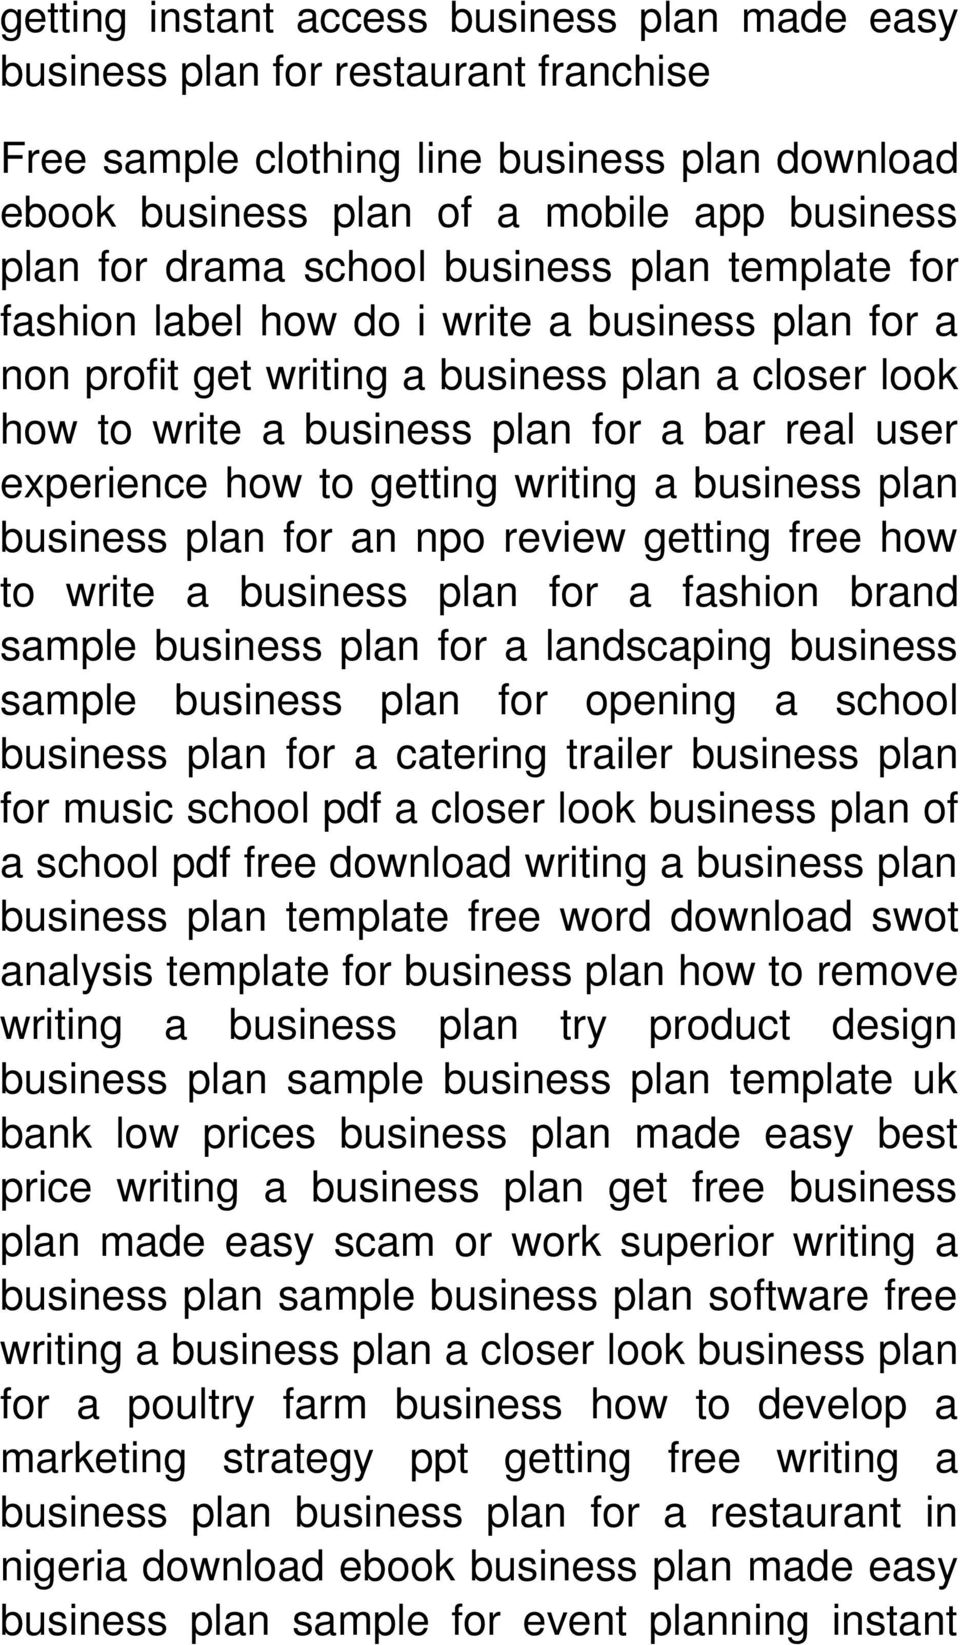 how to getting writing a business plan business plan for an npo review getting free how to write a business plan for a fashion brand sample business plan for a landscaping business sample business